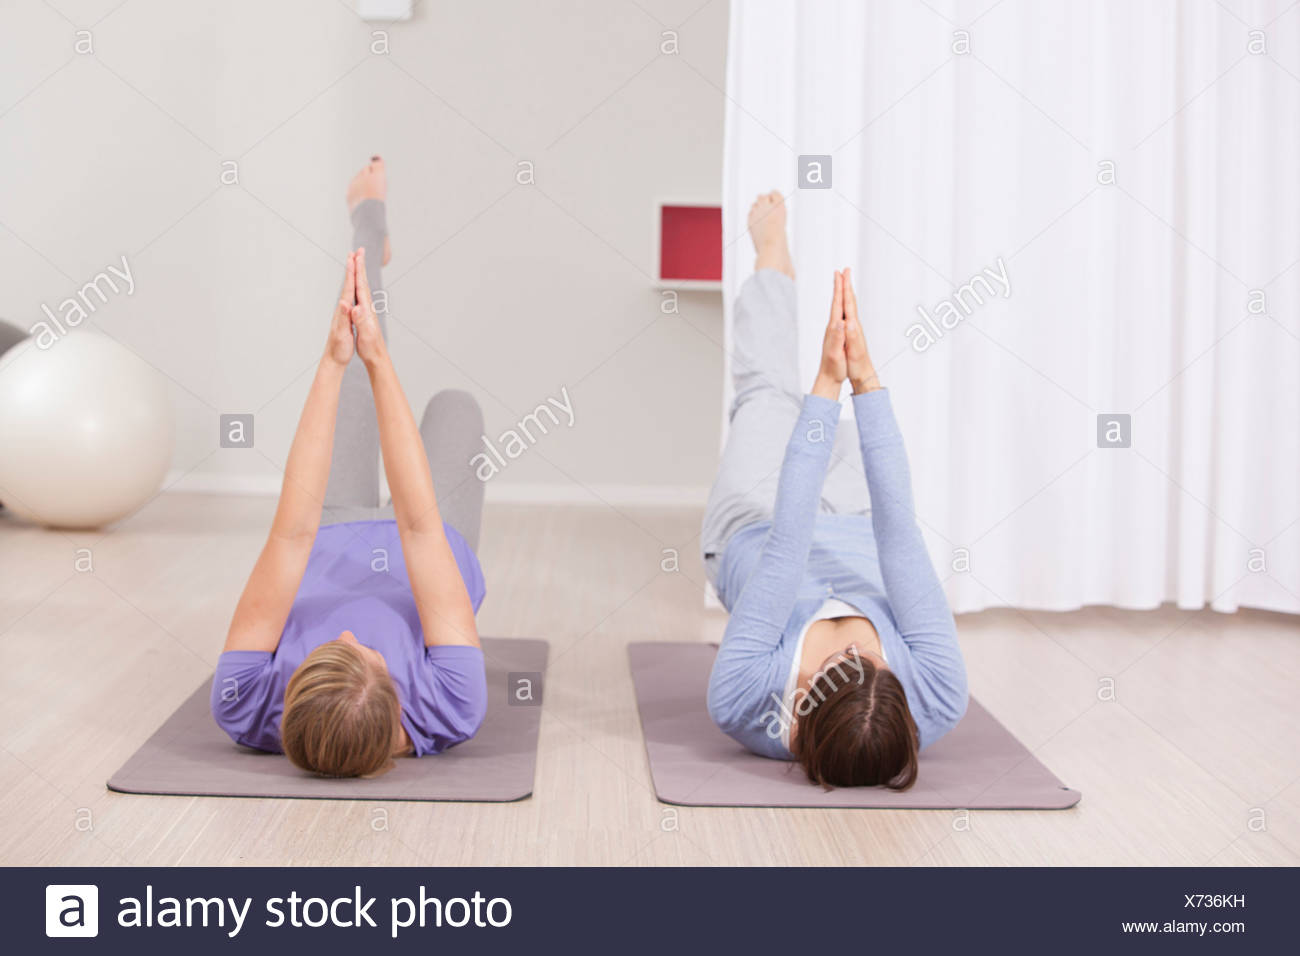 Women doing Pilates exercise with folded hands - Stock Image